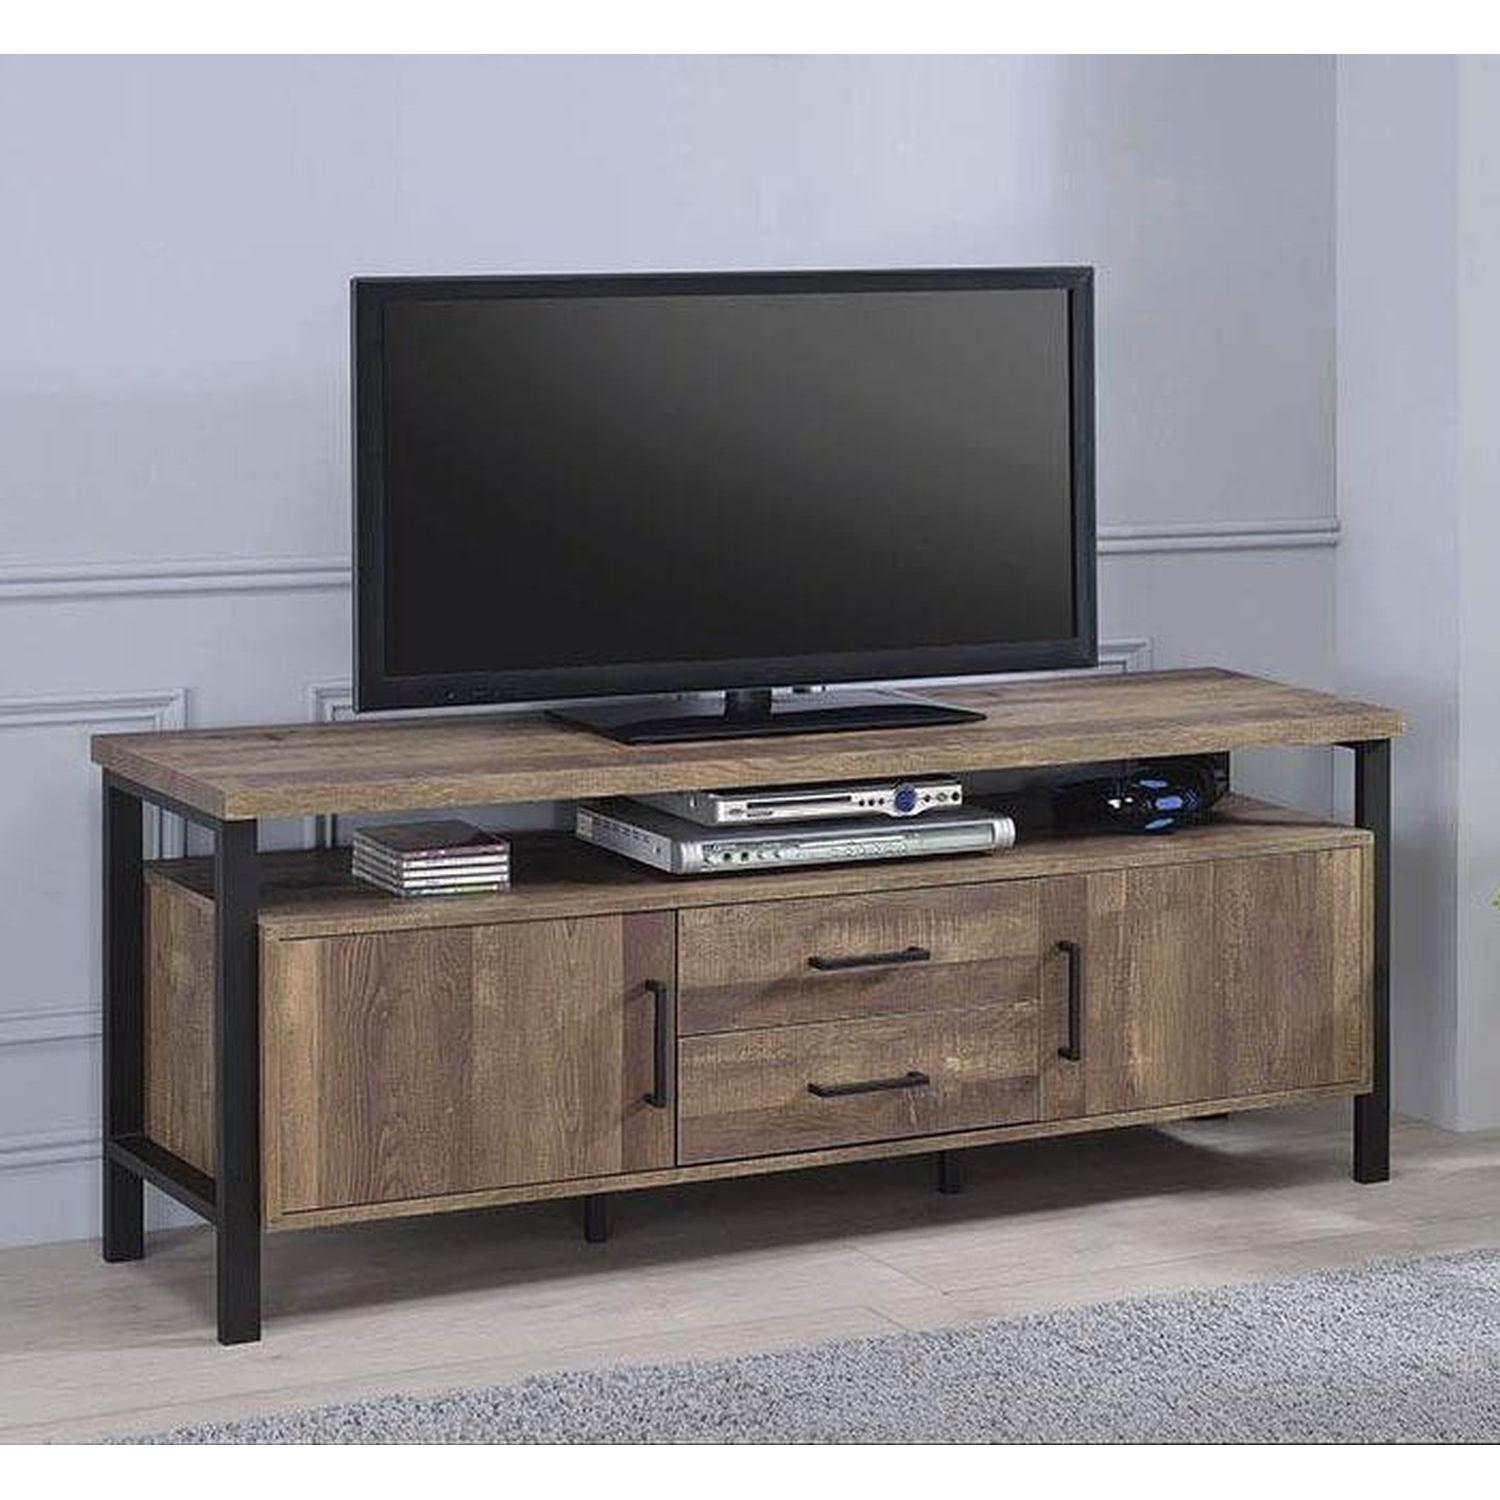 TV Stand In Rustic Oak Finish w/ 2 Cabinets & 2 Drawers - image-7